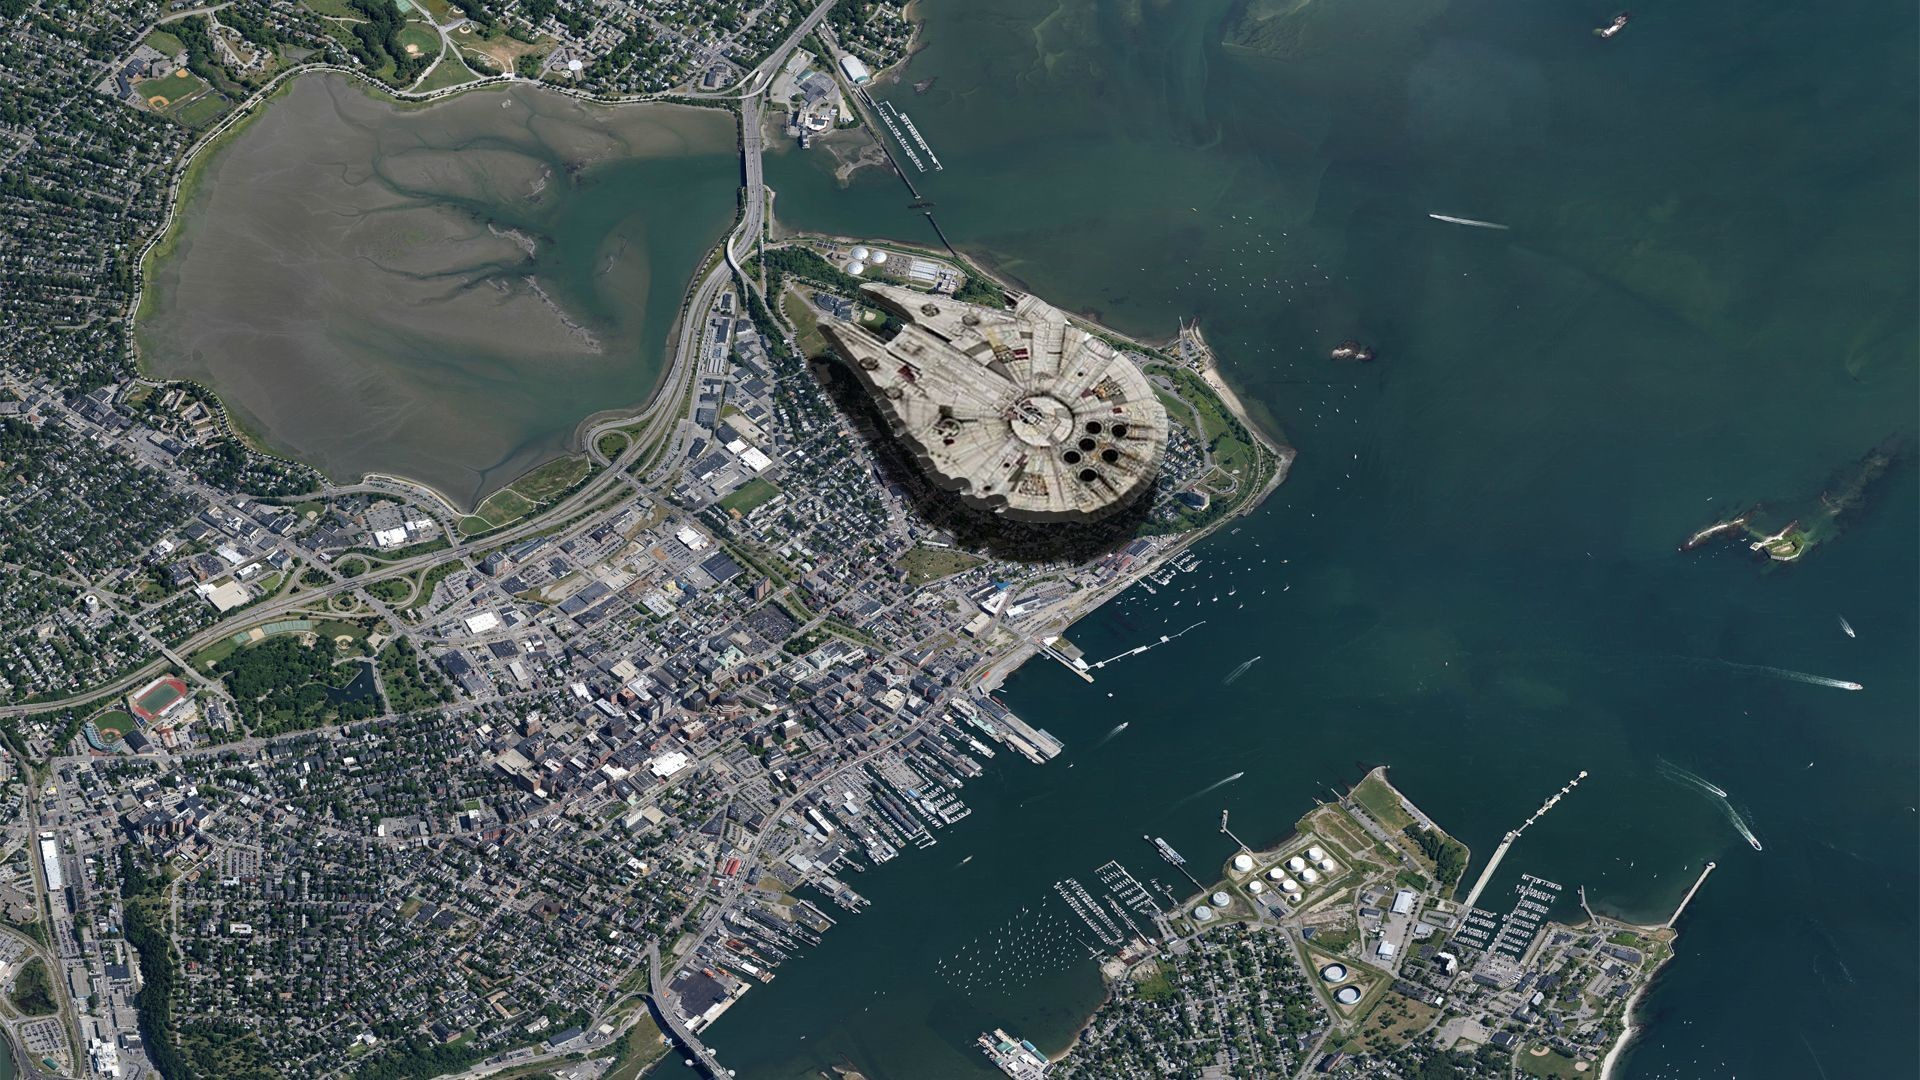 I think its time we talked about the Millenium Falcon hidden under the  eastern prom in Portland.